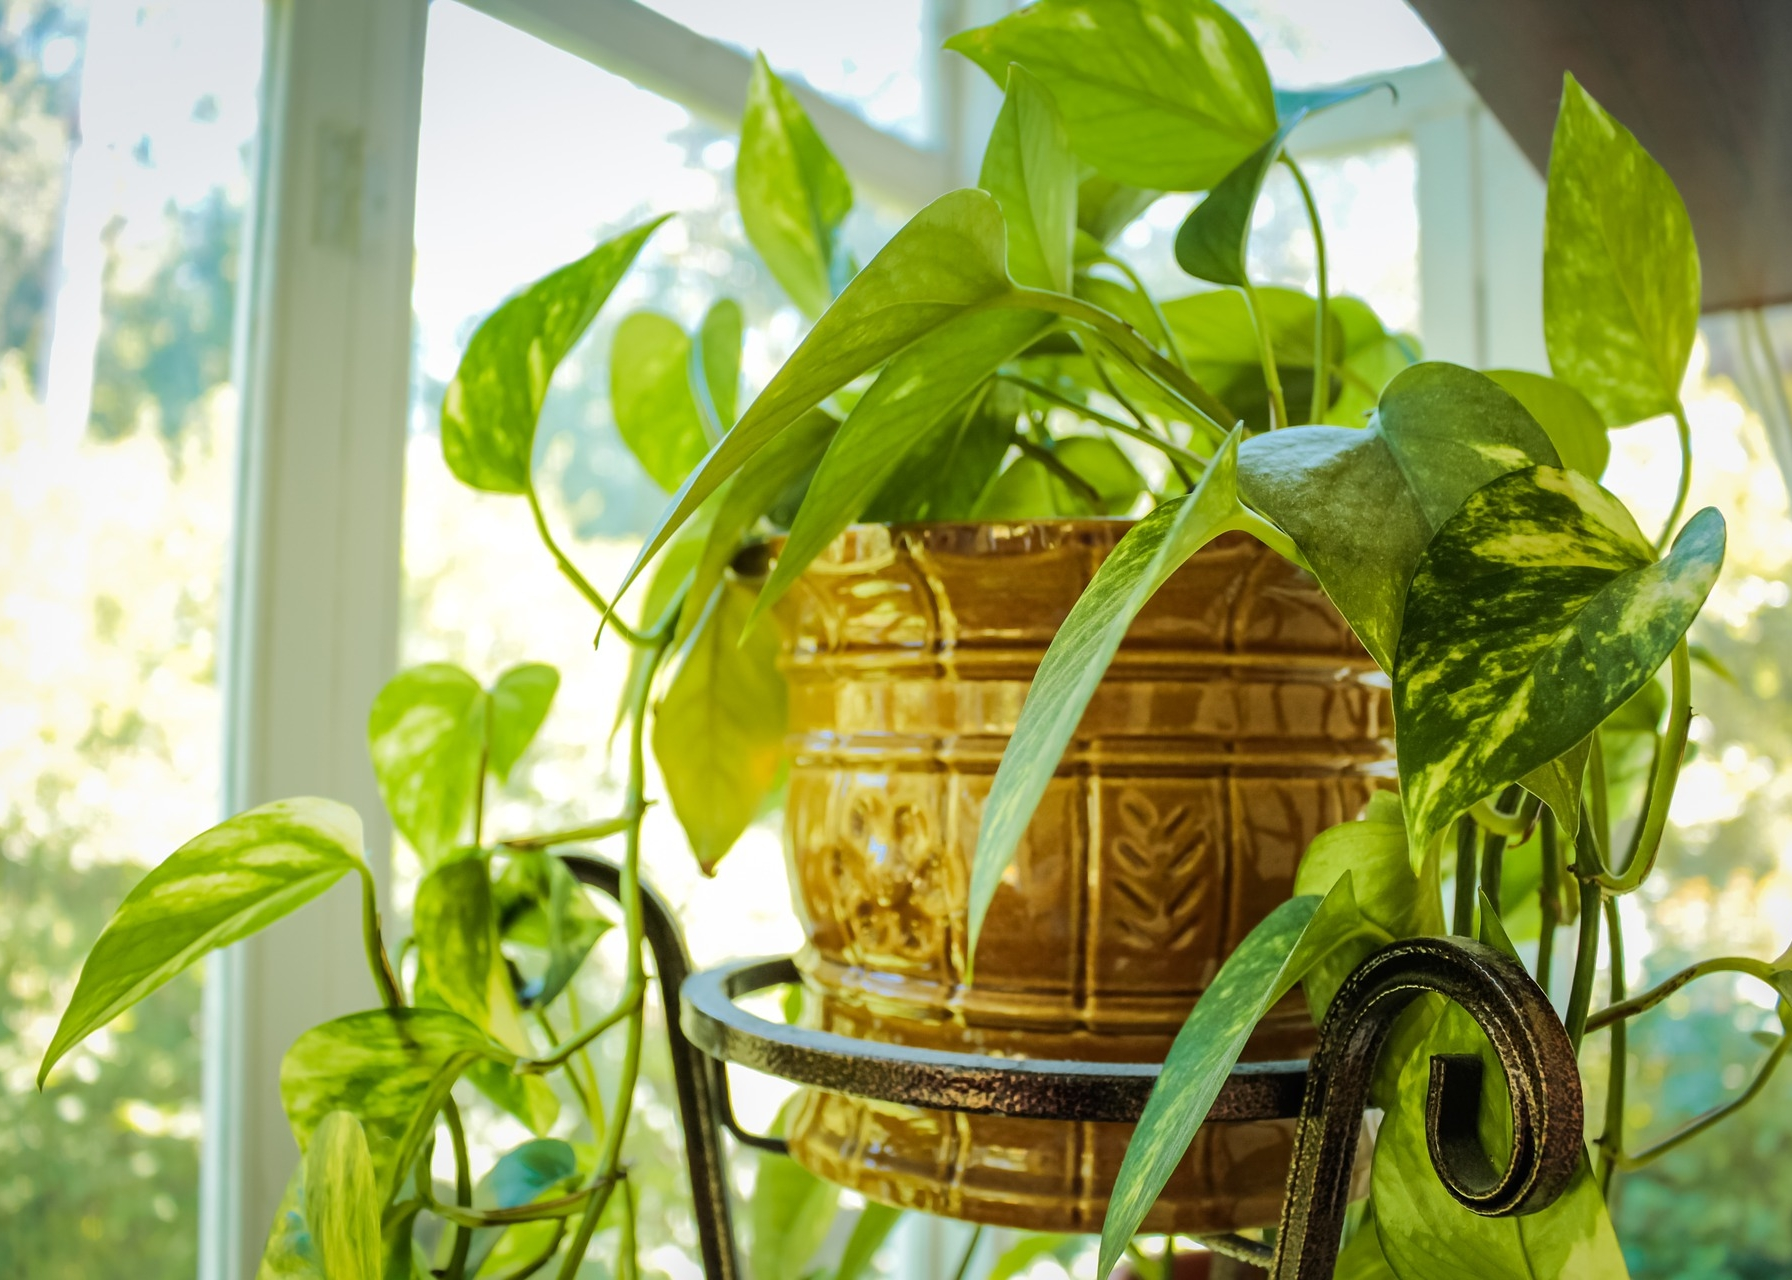 Pests of houseplants - variety and ways to combat them